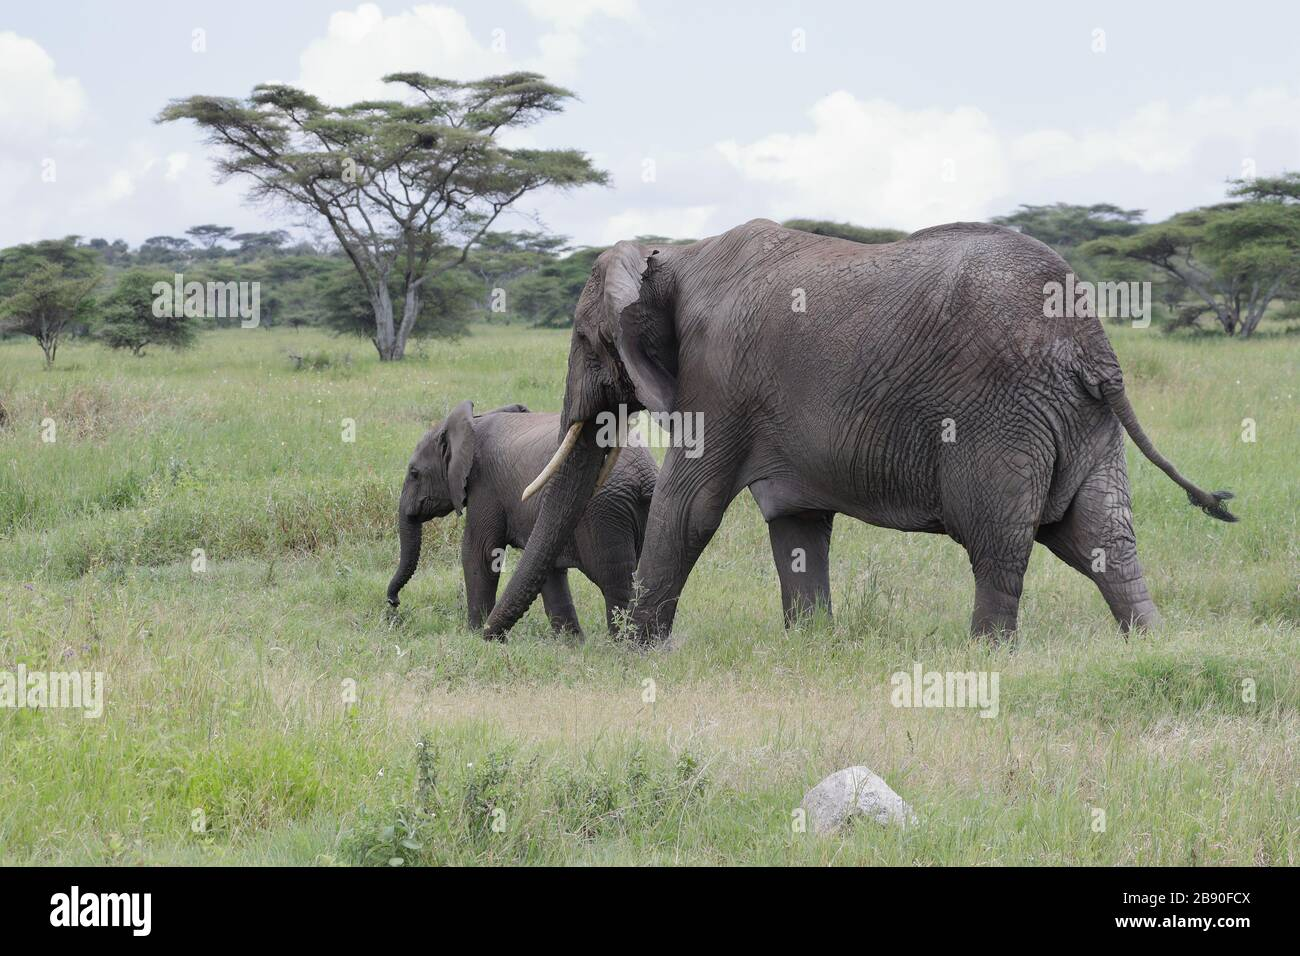 The African bush elephant, also known as the African savanna elephant, is the largest living terrestrial animal. Stock Photo